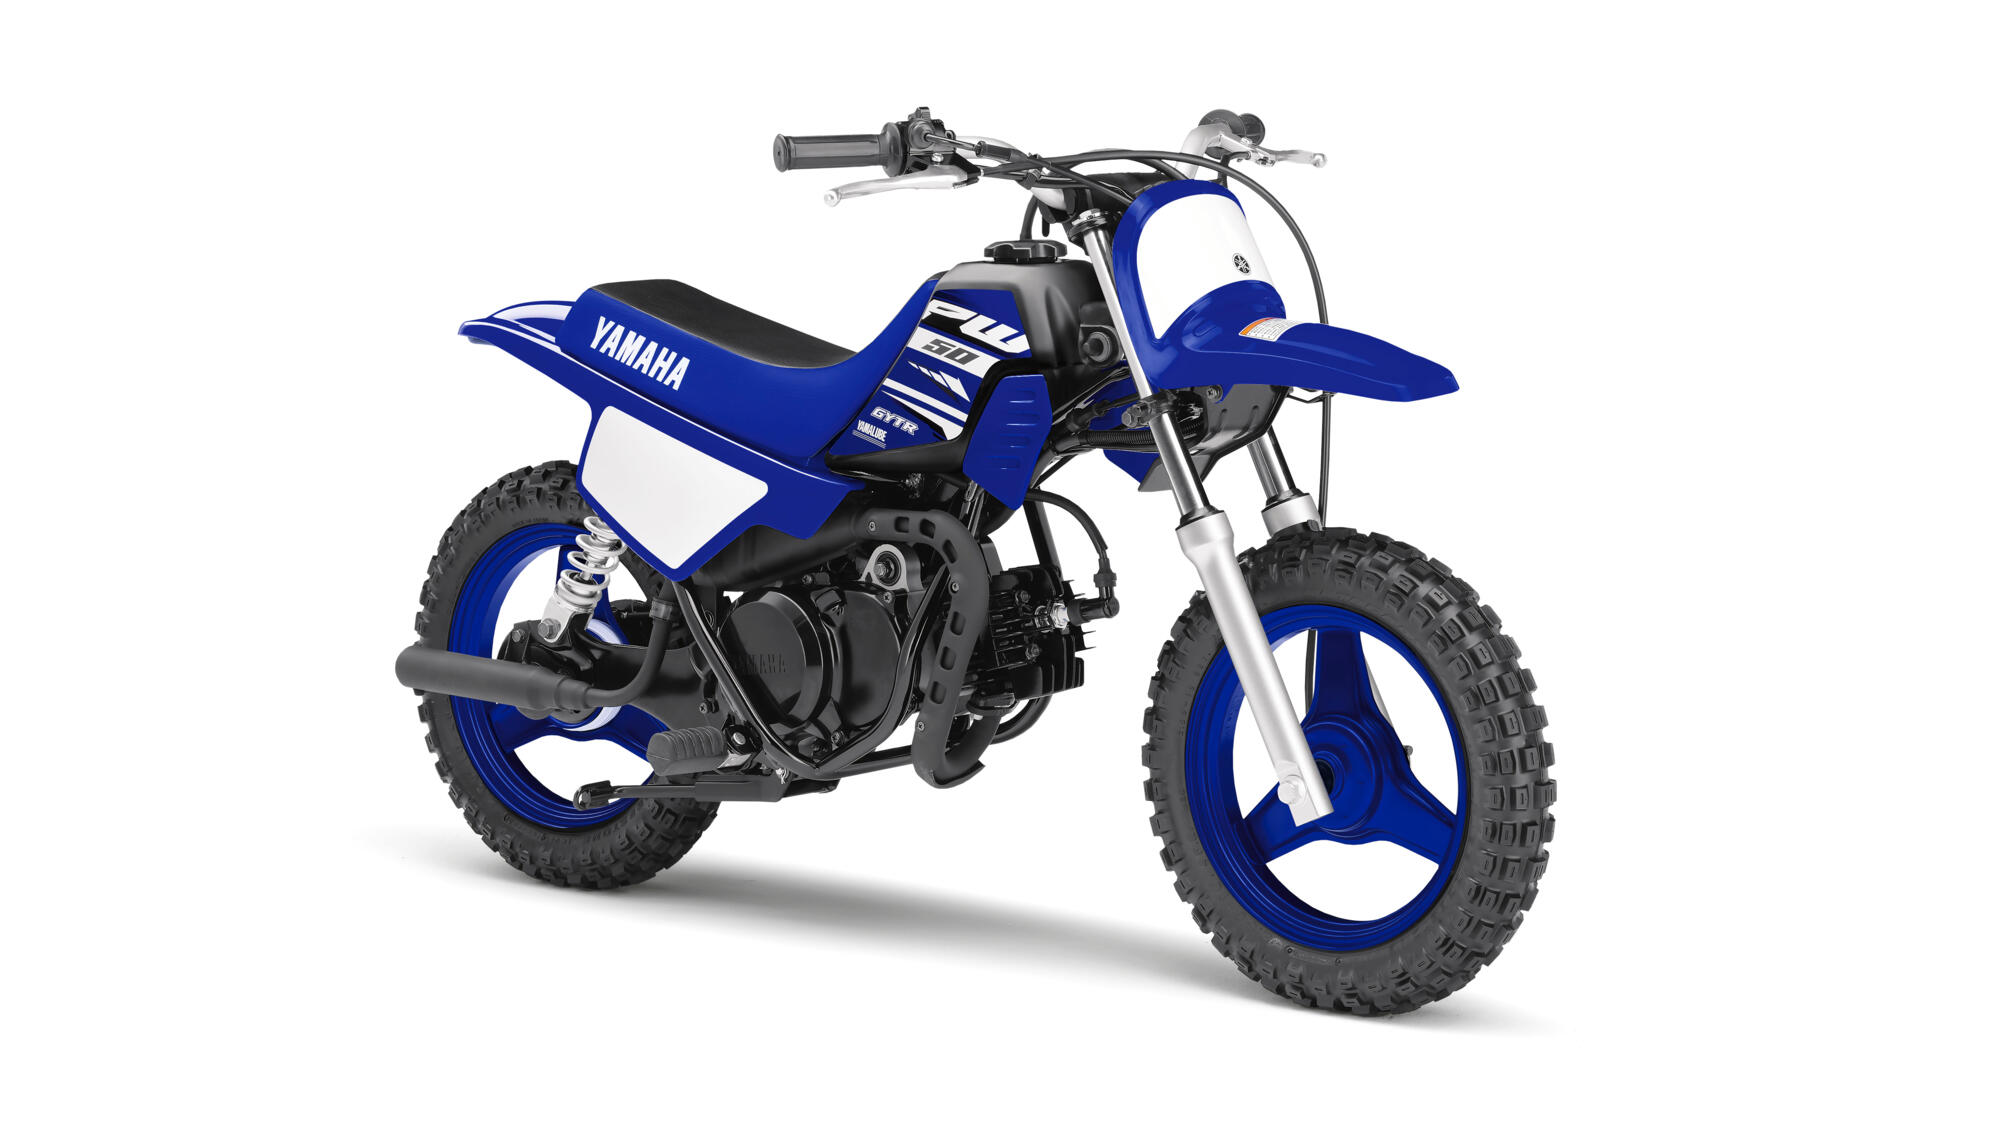 PW50 - Off Road Motorcycles - YME Website